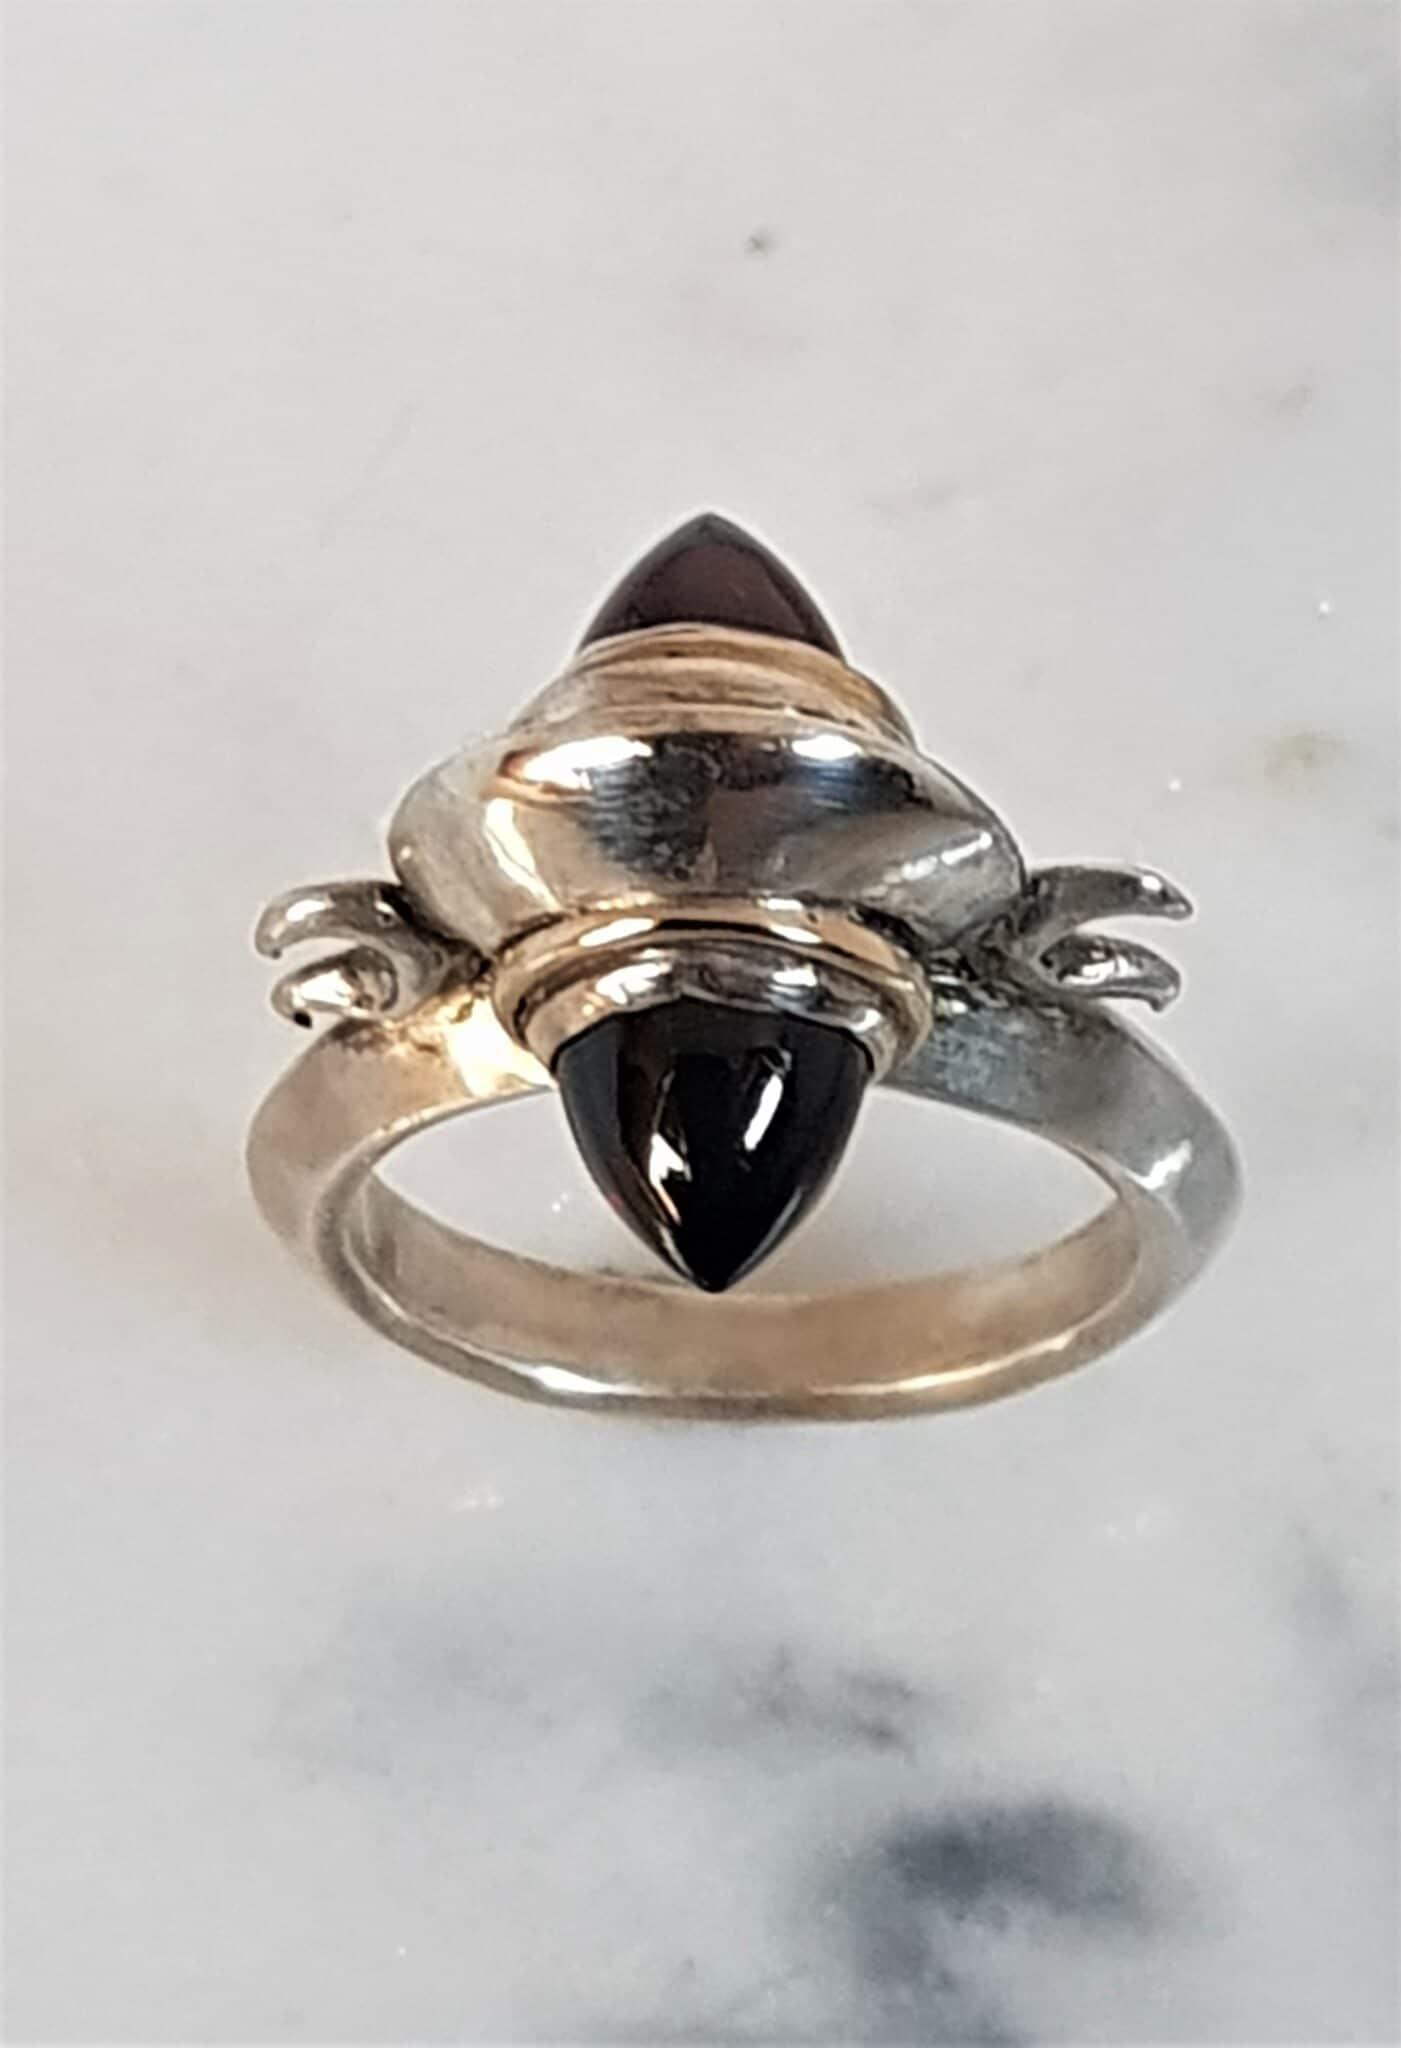 Arc Ring In Silver And 9ct Gold With Bullet Headed Garnets, Size O By Corinne Lomon